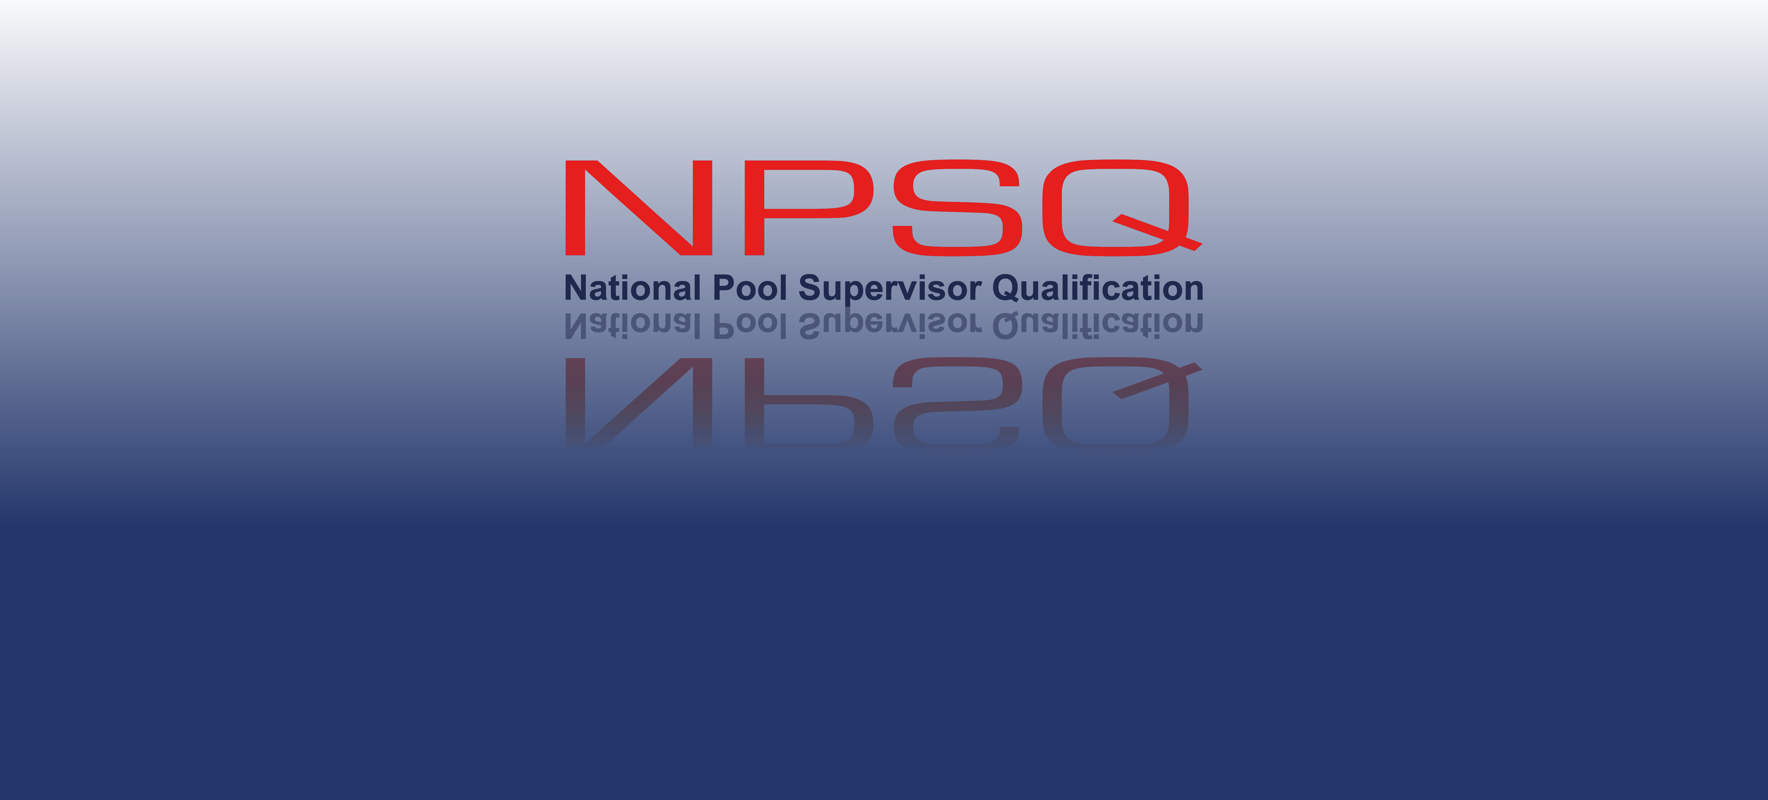 National Pool Supervisor Qualification - Testimonials